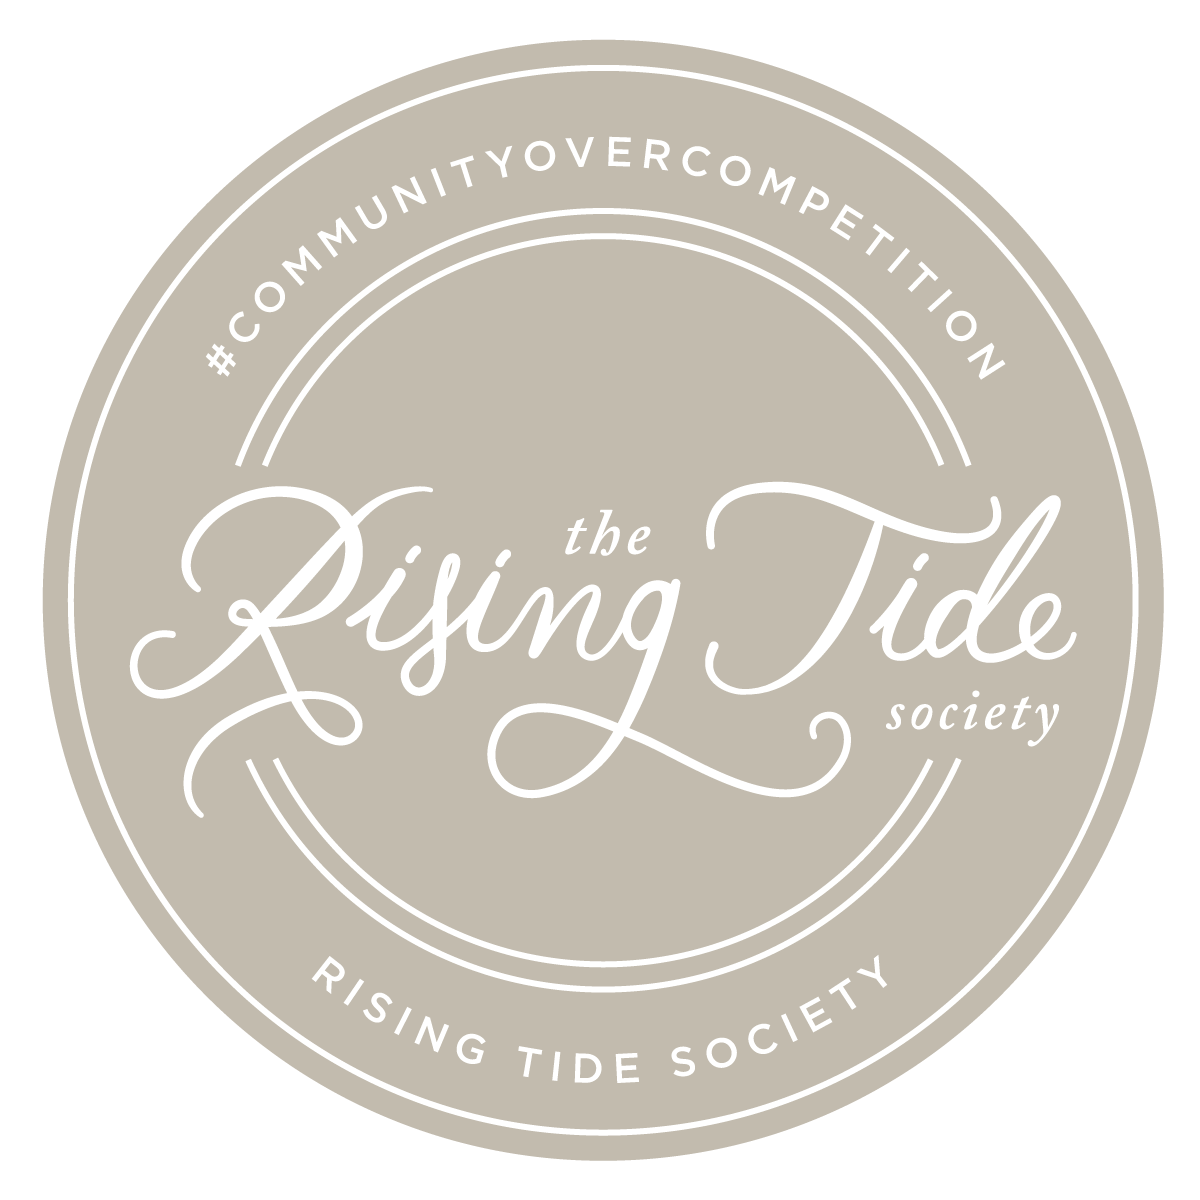 member of The Rising Tide Society